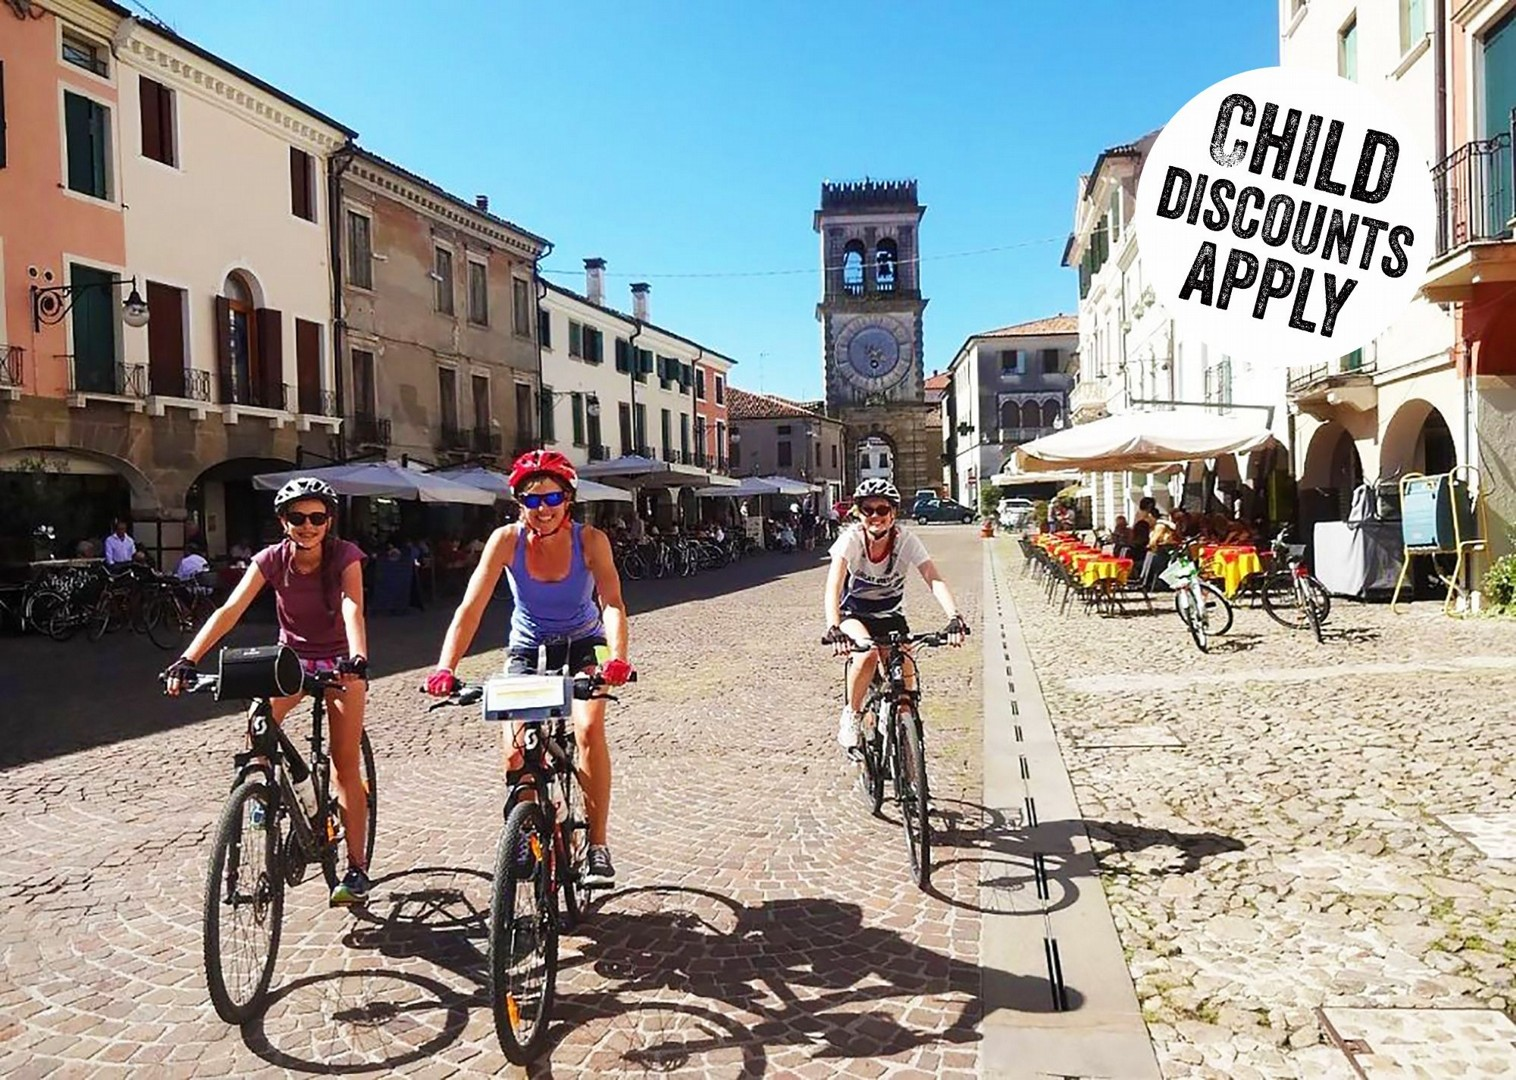 italy-lake-garda-venice-Family-Cycling-Holiday-Lake-Garda-Venice-Italy.jpg - Italy - Lake Garda to Venice - Self-Guided Family Cycling Holiday - Italia Leisure and Family Cycling